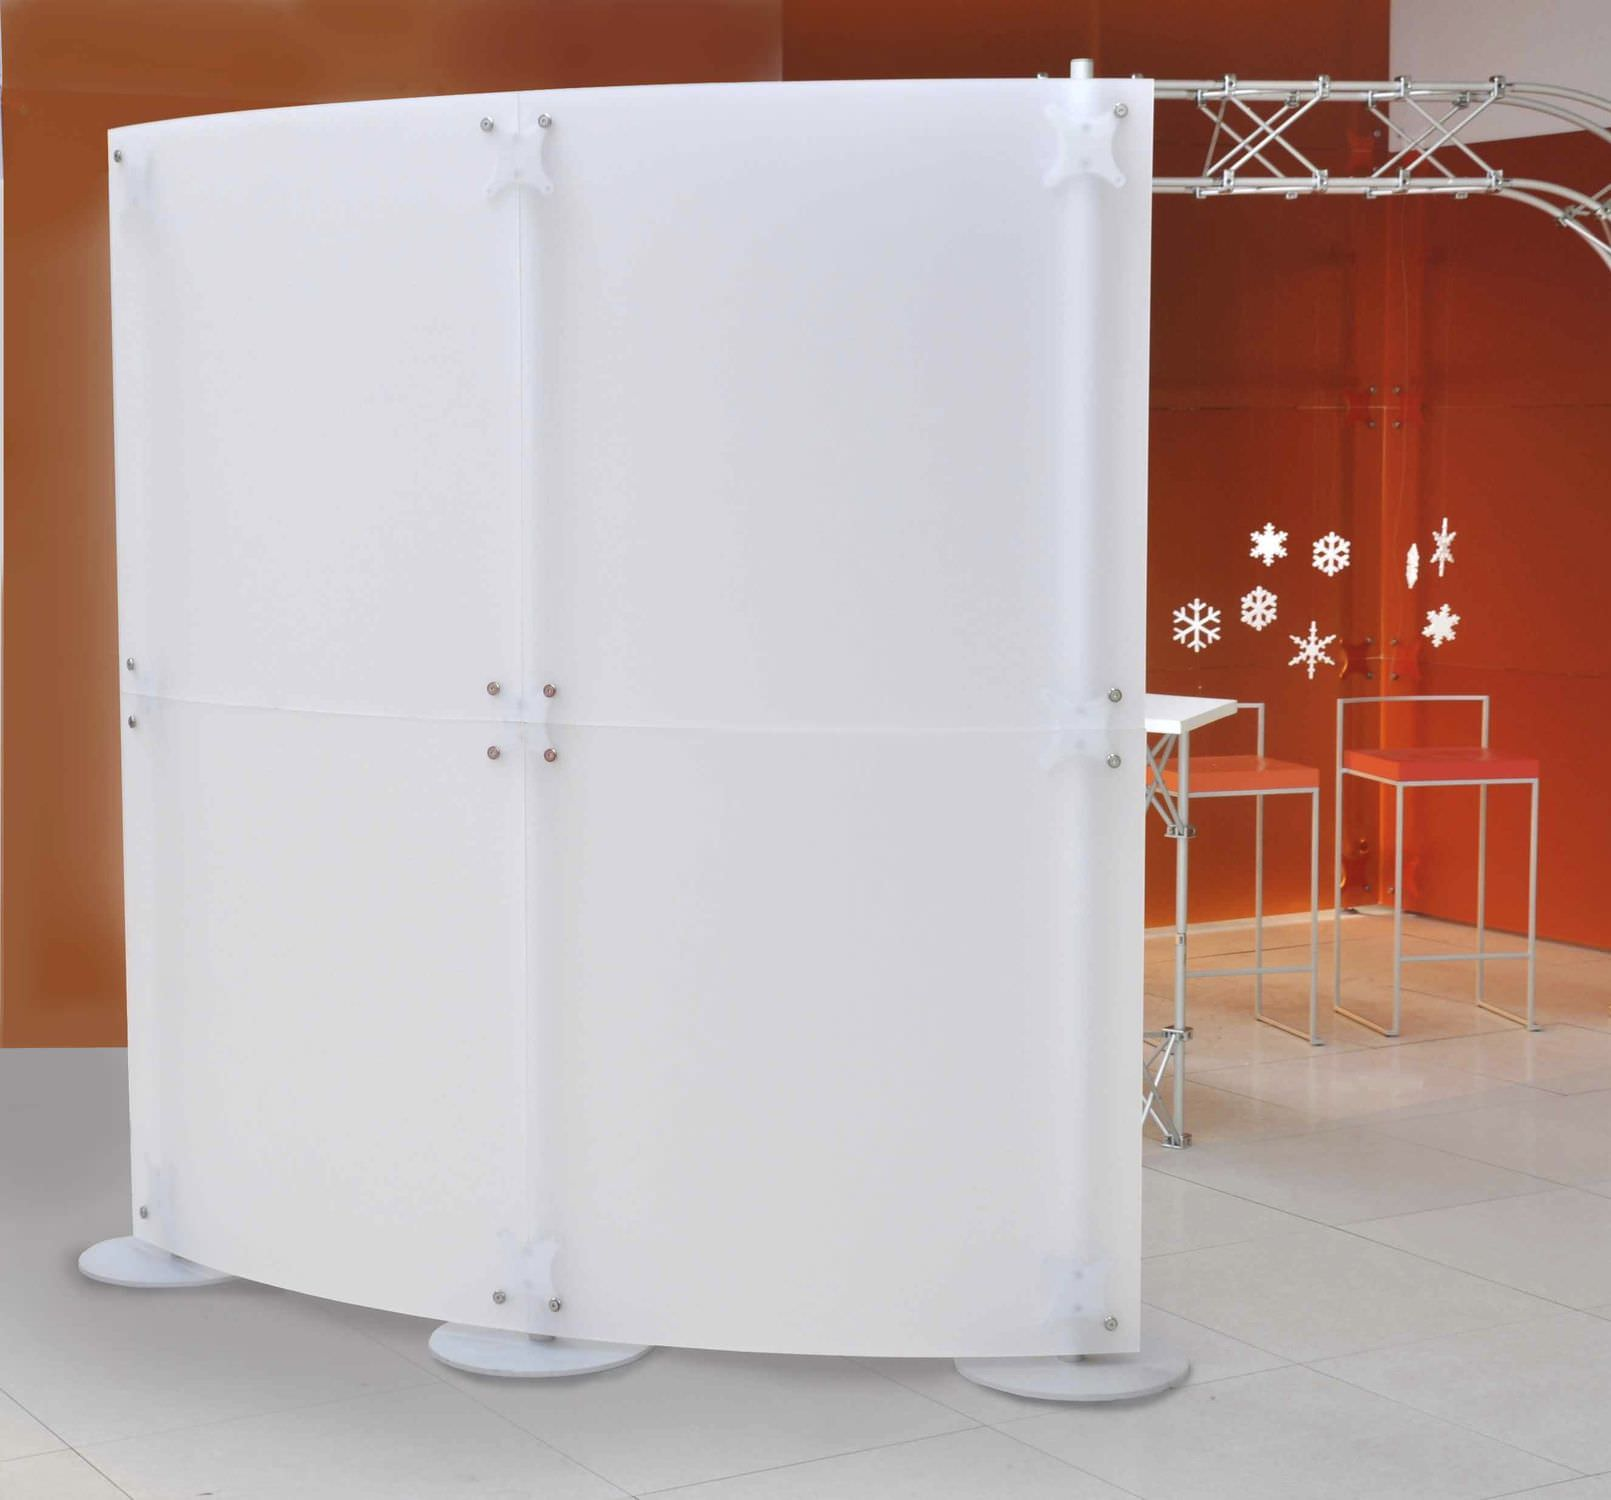 Floor Mounted Office Divider Acrylic Modular Fluowall White Screen